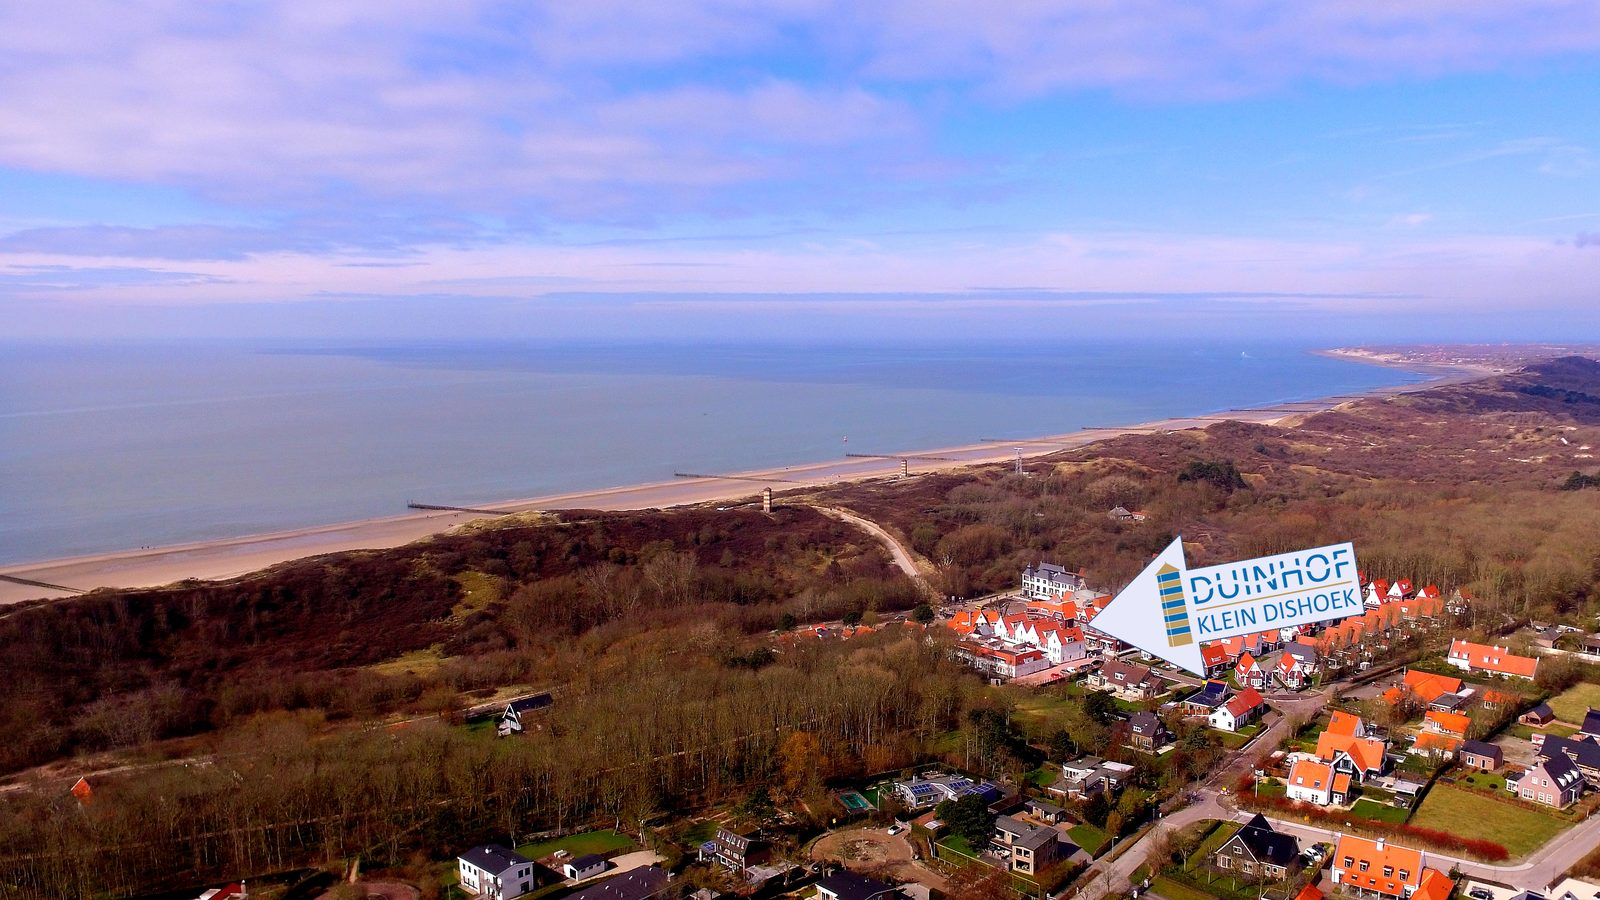 Brandneue luxuriöse Appartments auf einer Toplocation am Meer: Duinhof Dishoek